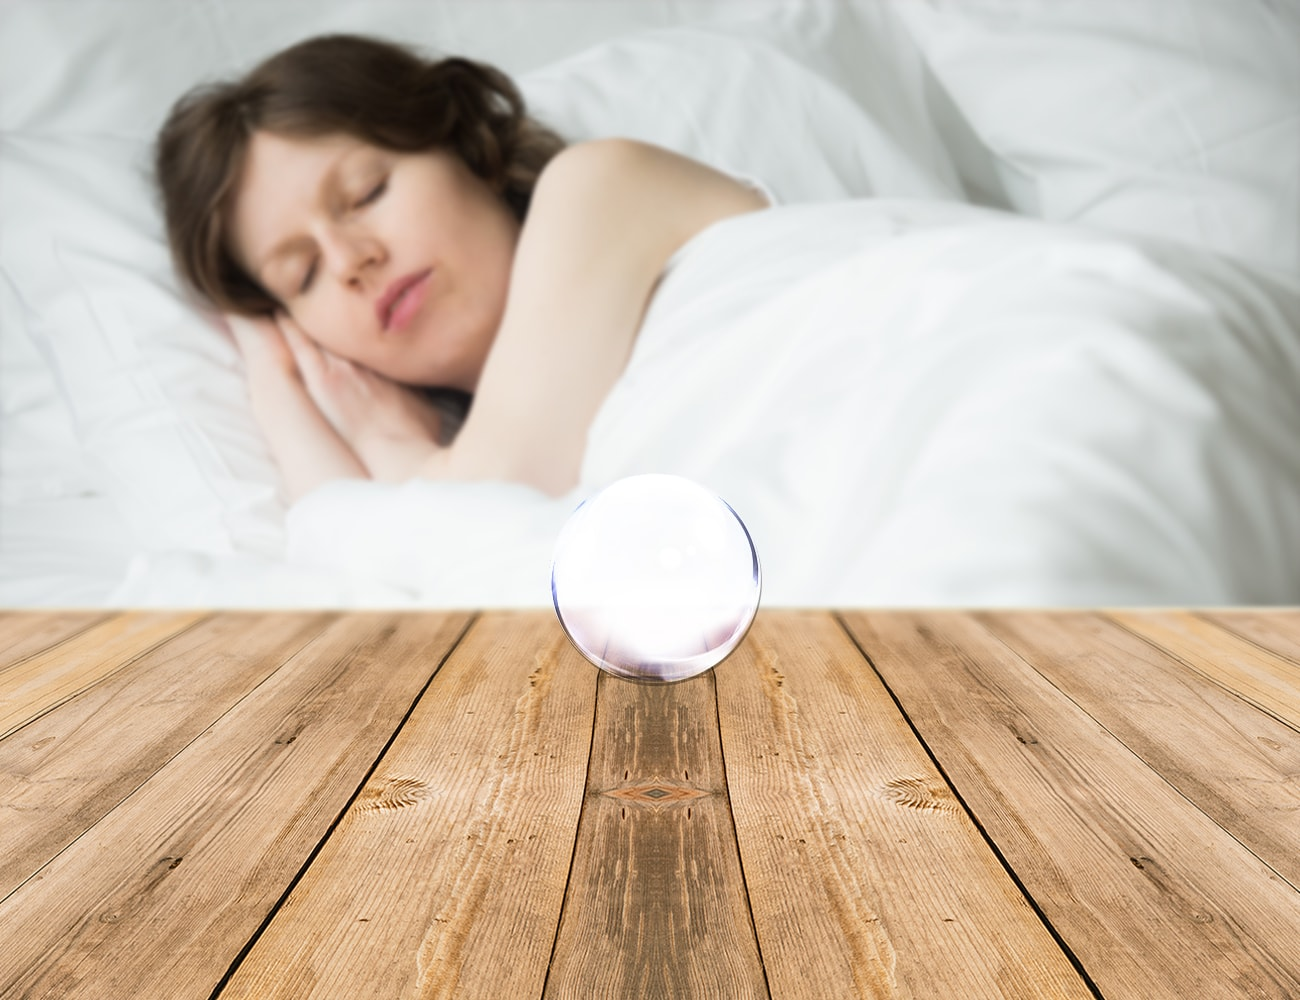 SleepBliss – Deep Sleep Brainwave Tuning Technology